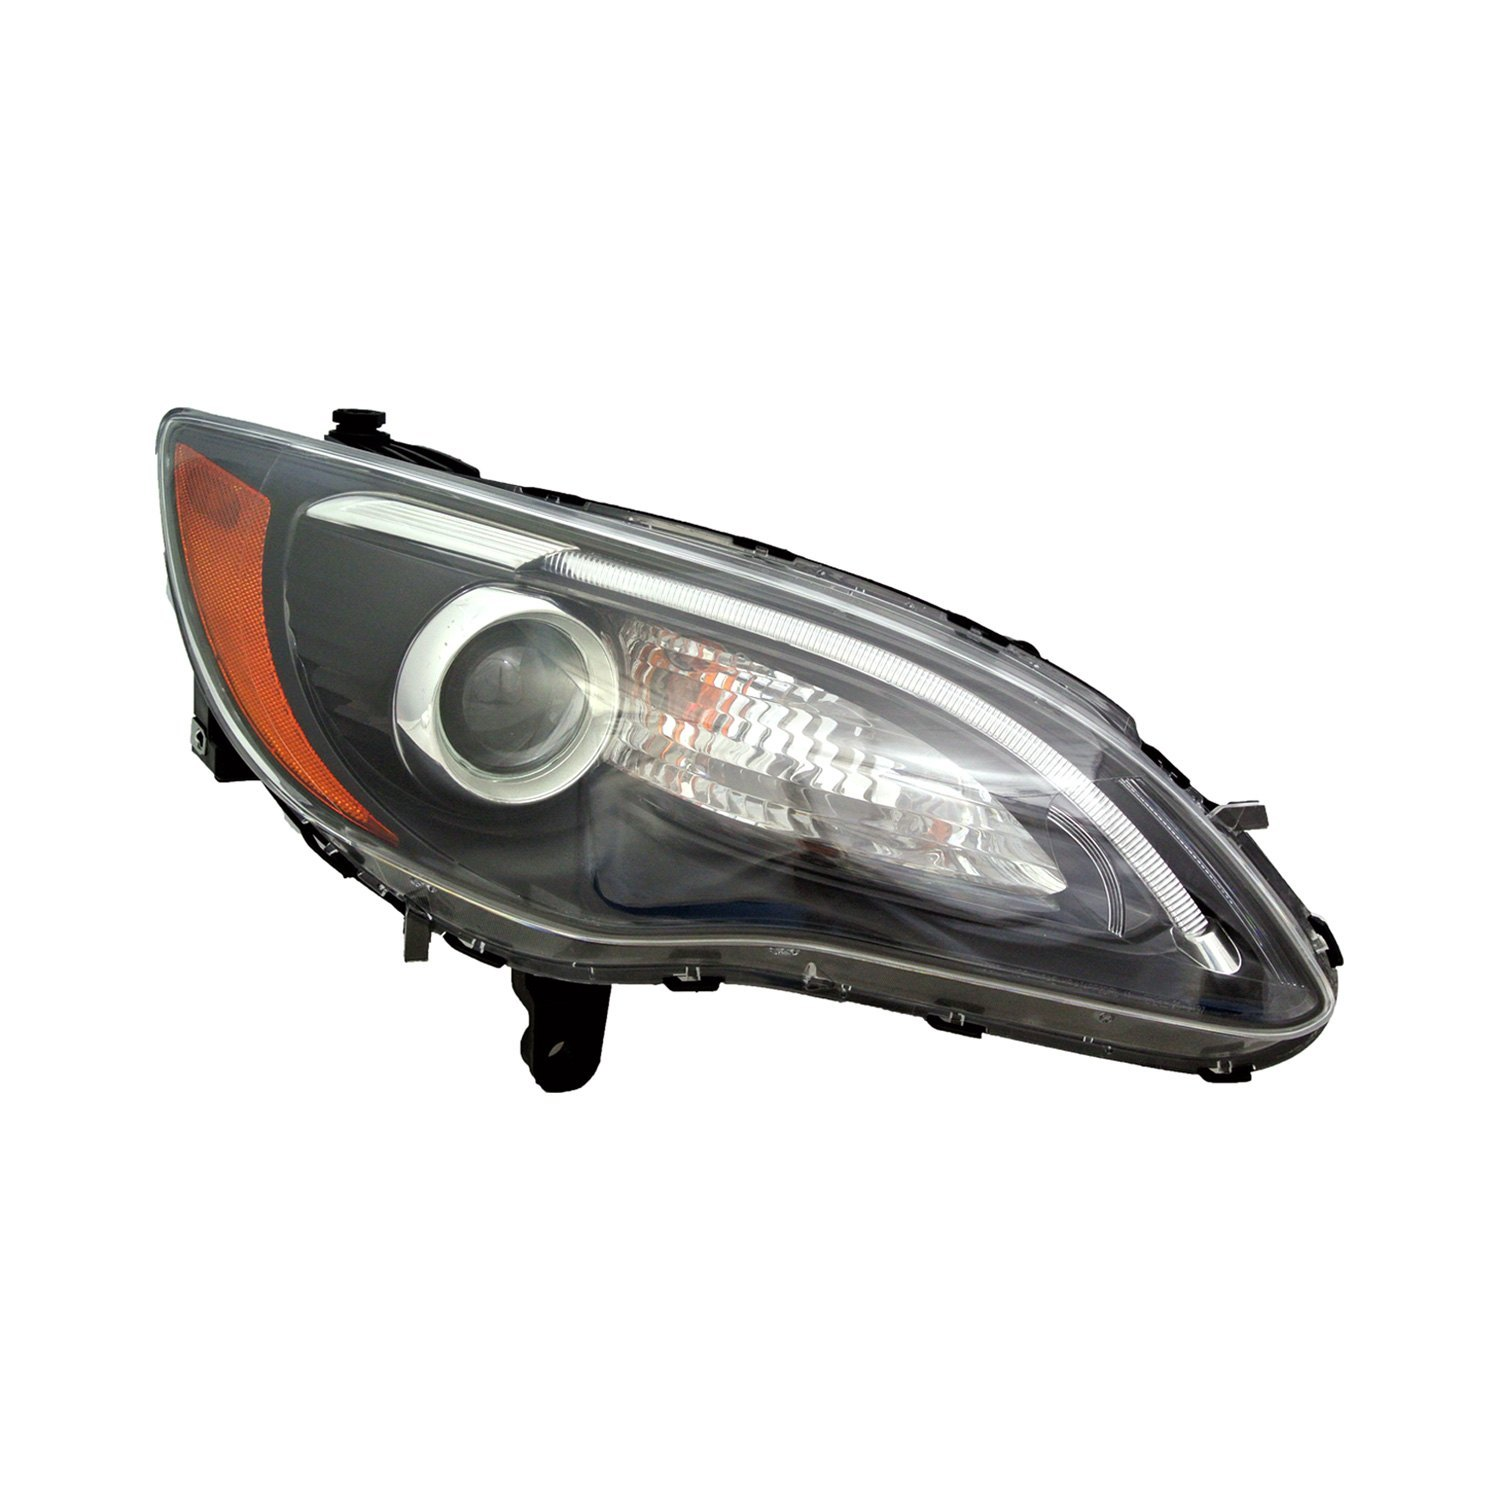 Replace 174 Chrysler 200 With Factory Halogen Headlights